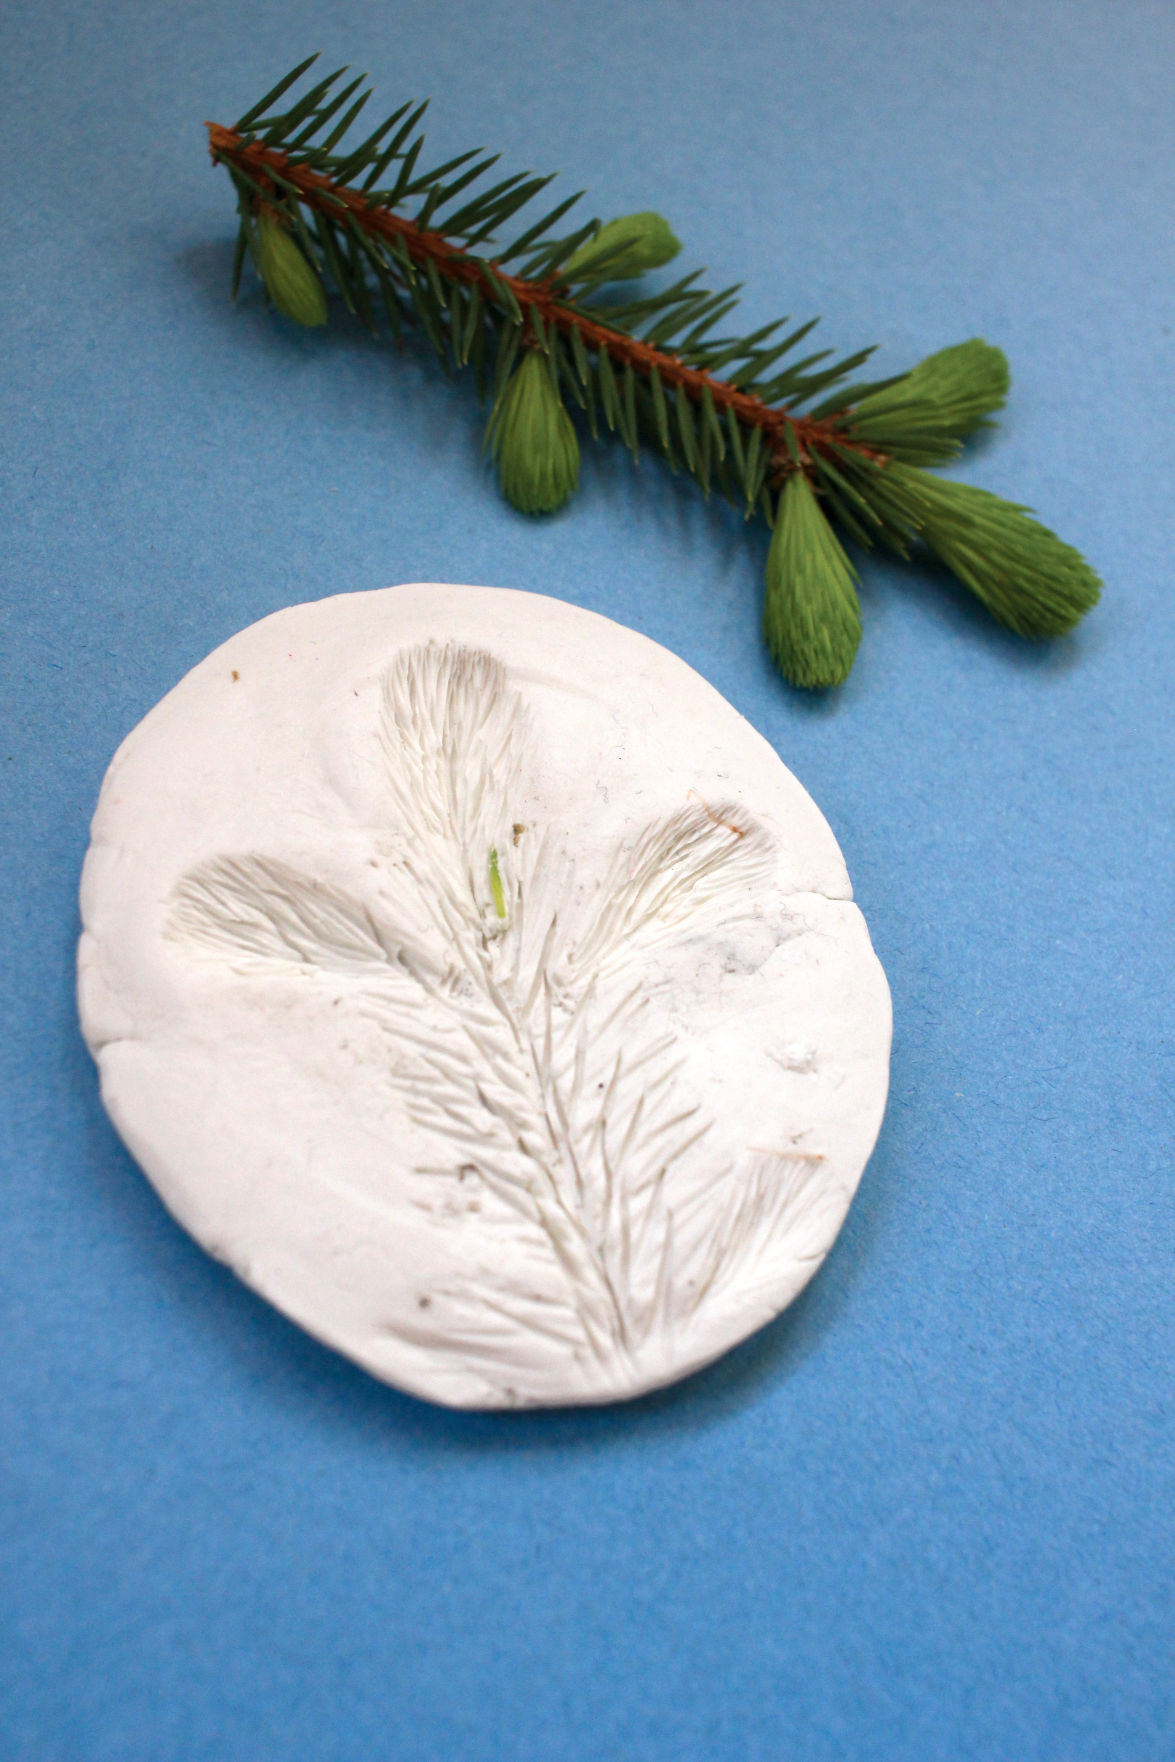 Clay medallion craft